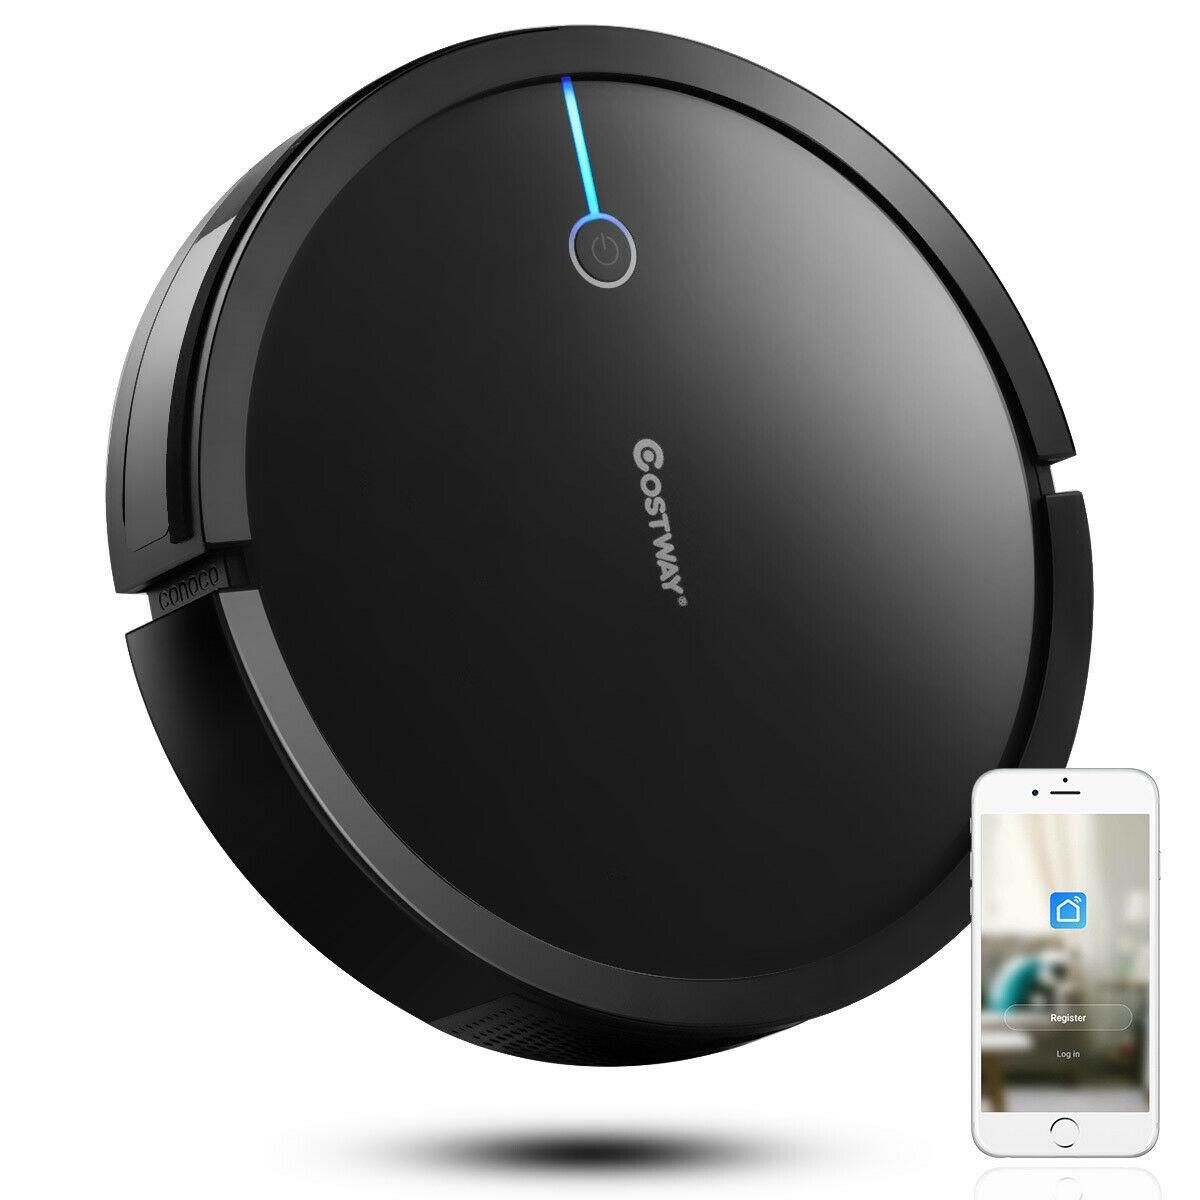 Costway Robot Vacuum Cleaner Self-Charge App Voice Control Filter Water Tank WhiteBlack